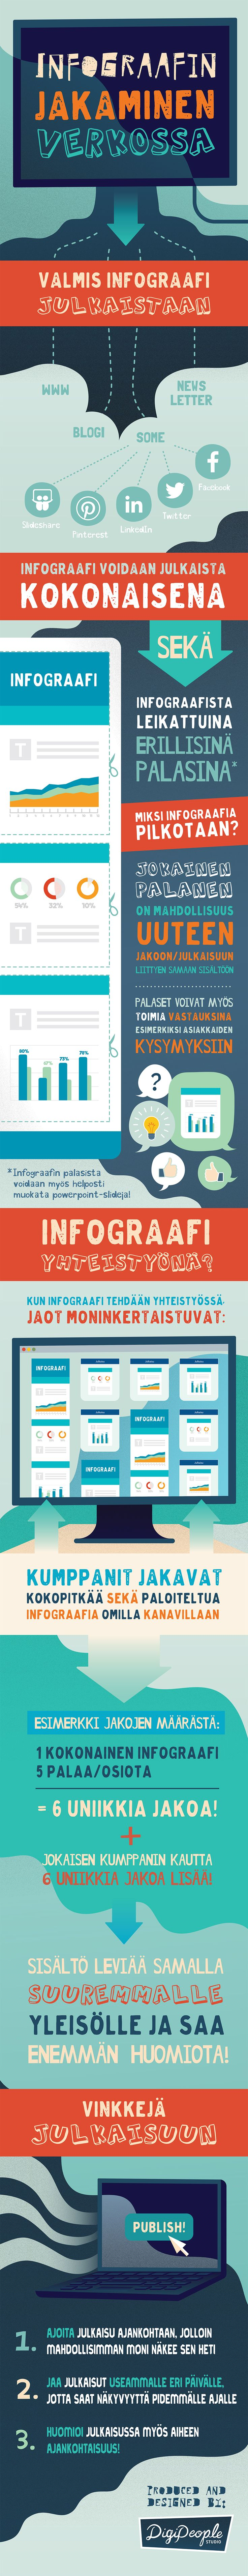 Infographic | infographic design | DigiPeople Studio | By Riikka Häkkinen